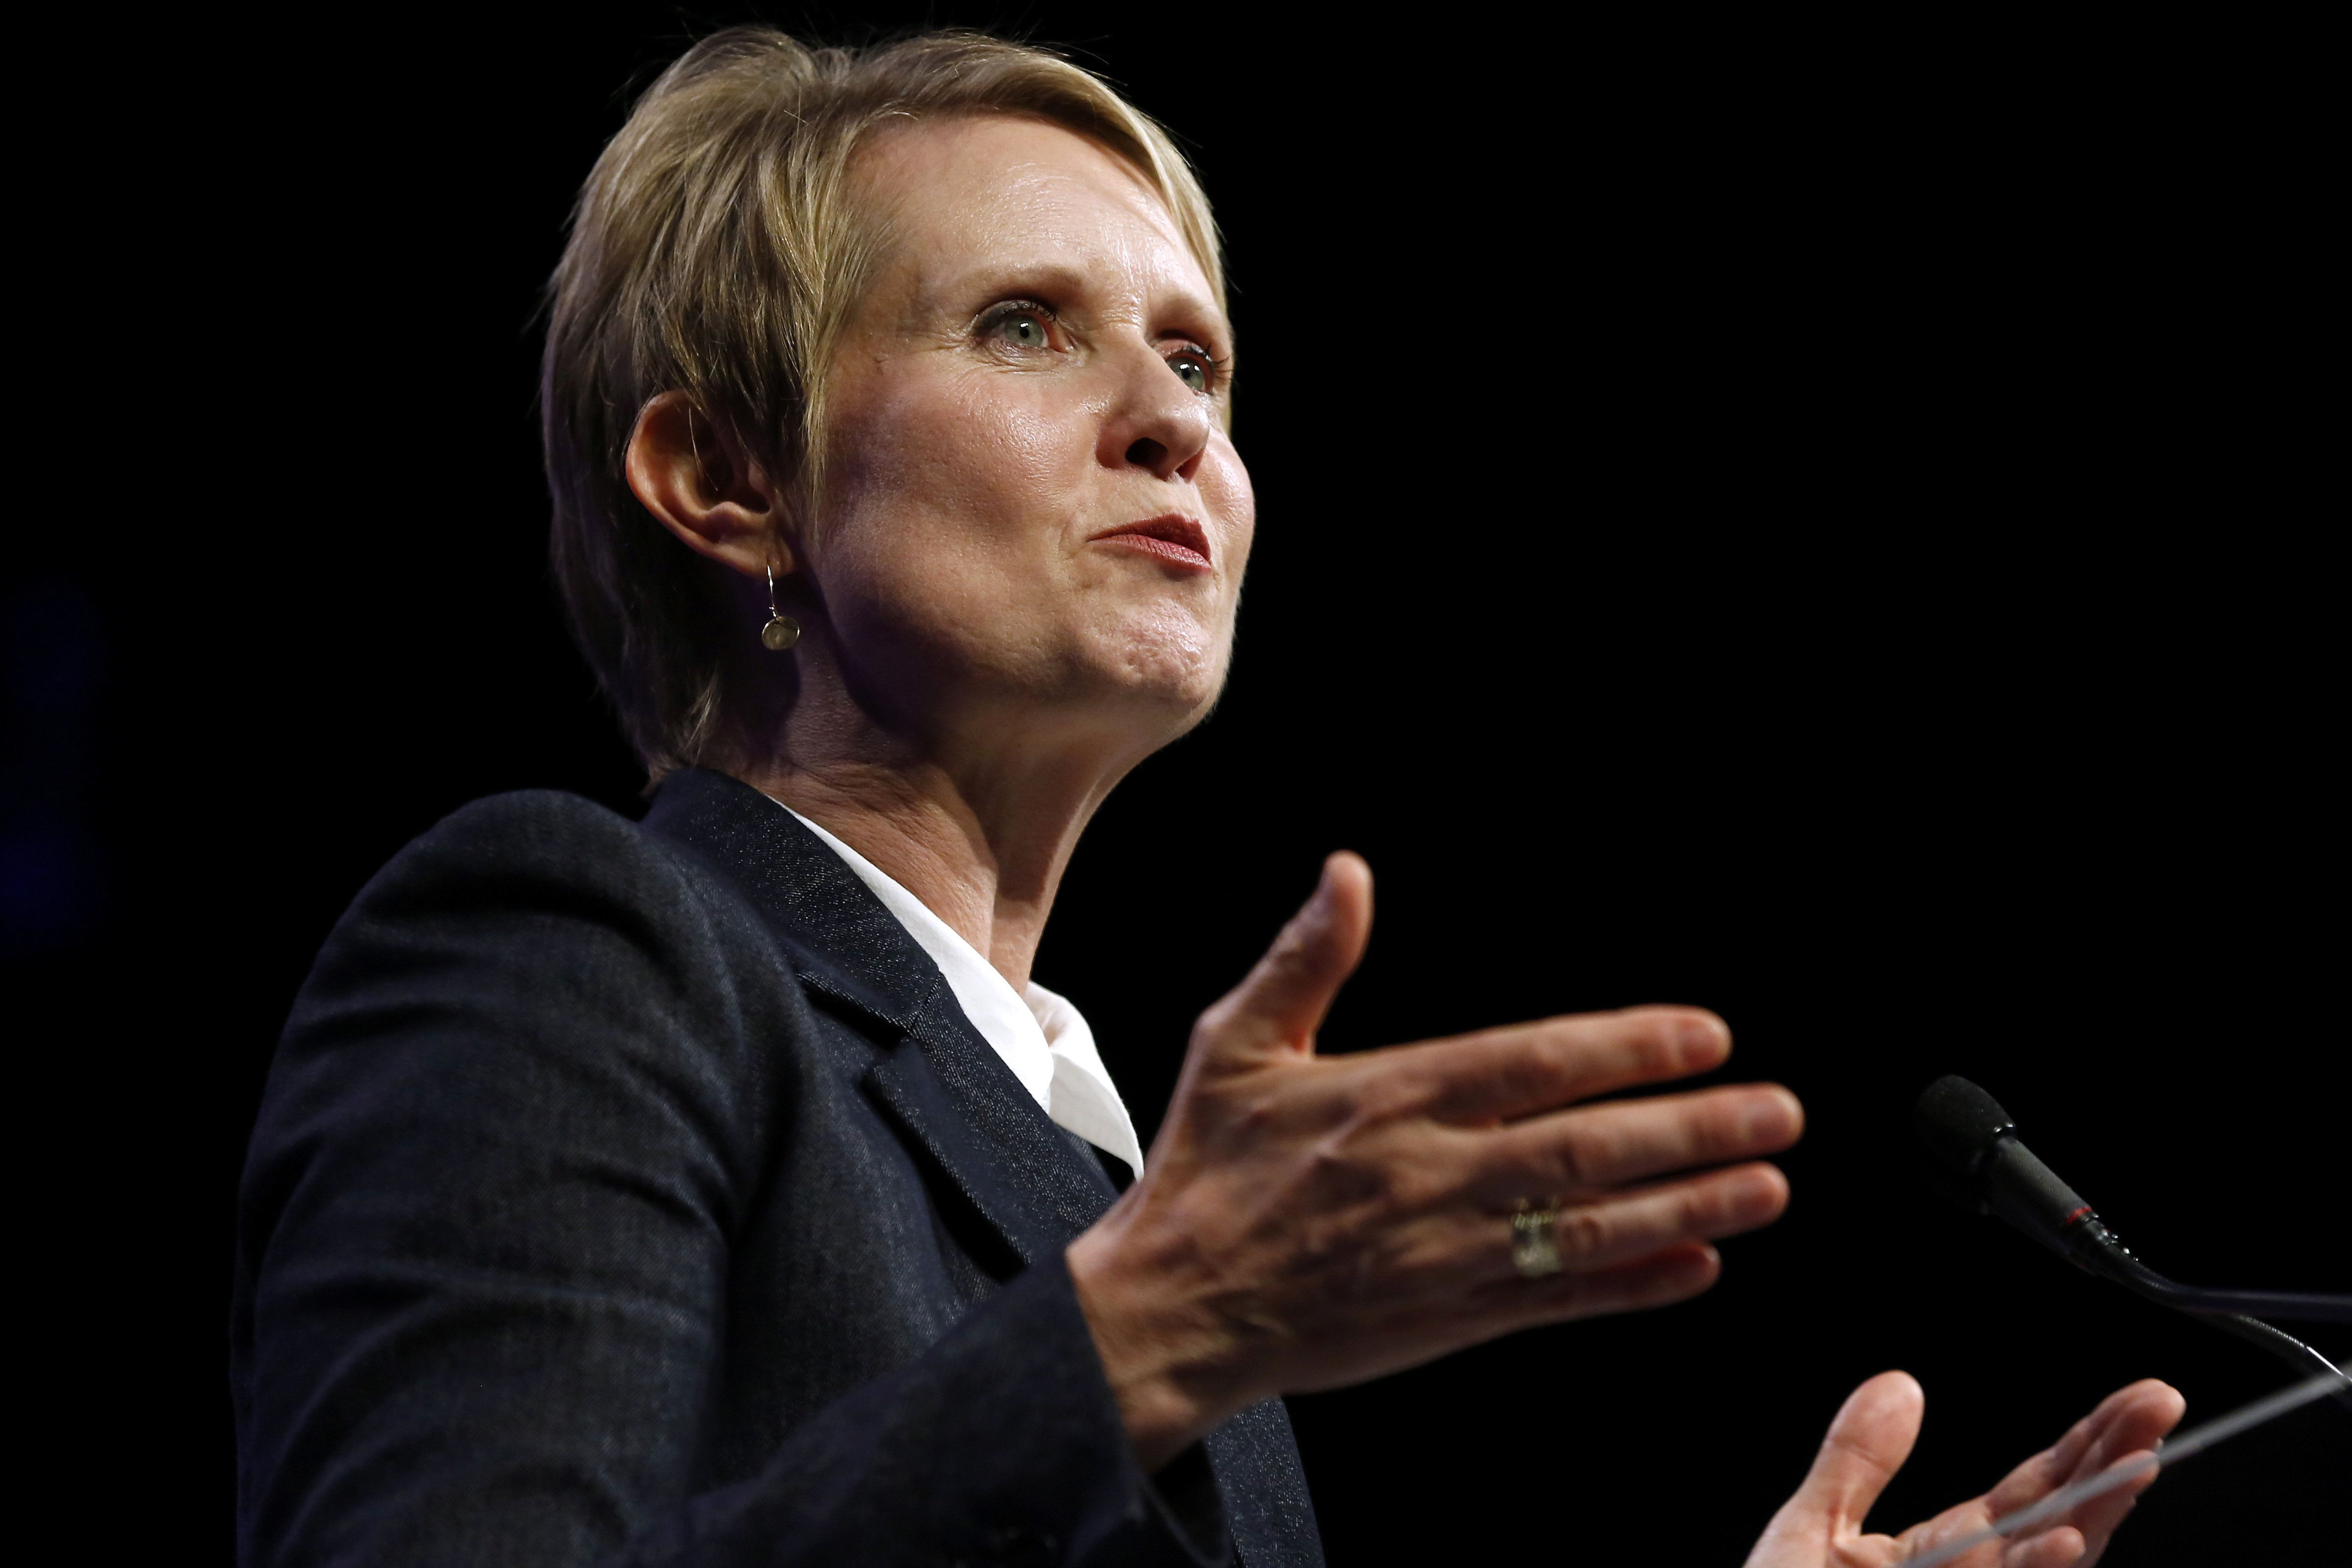 Cynthia Nixon, gubernatorial candidate for the State of New York, speaks at the Netroots Nation annual conference for political progressives in New Orleans, Louisiana, U.S. August 3, 2018. REUTERS/Jonathan Bachman